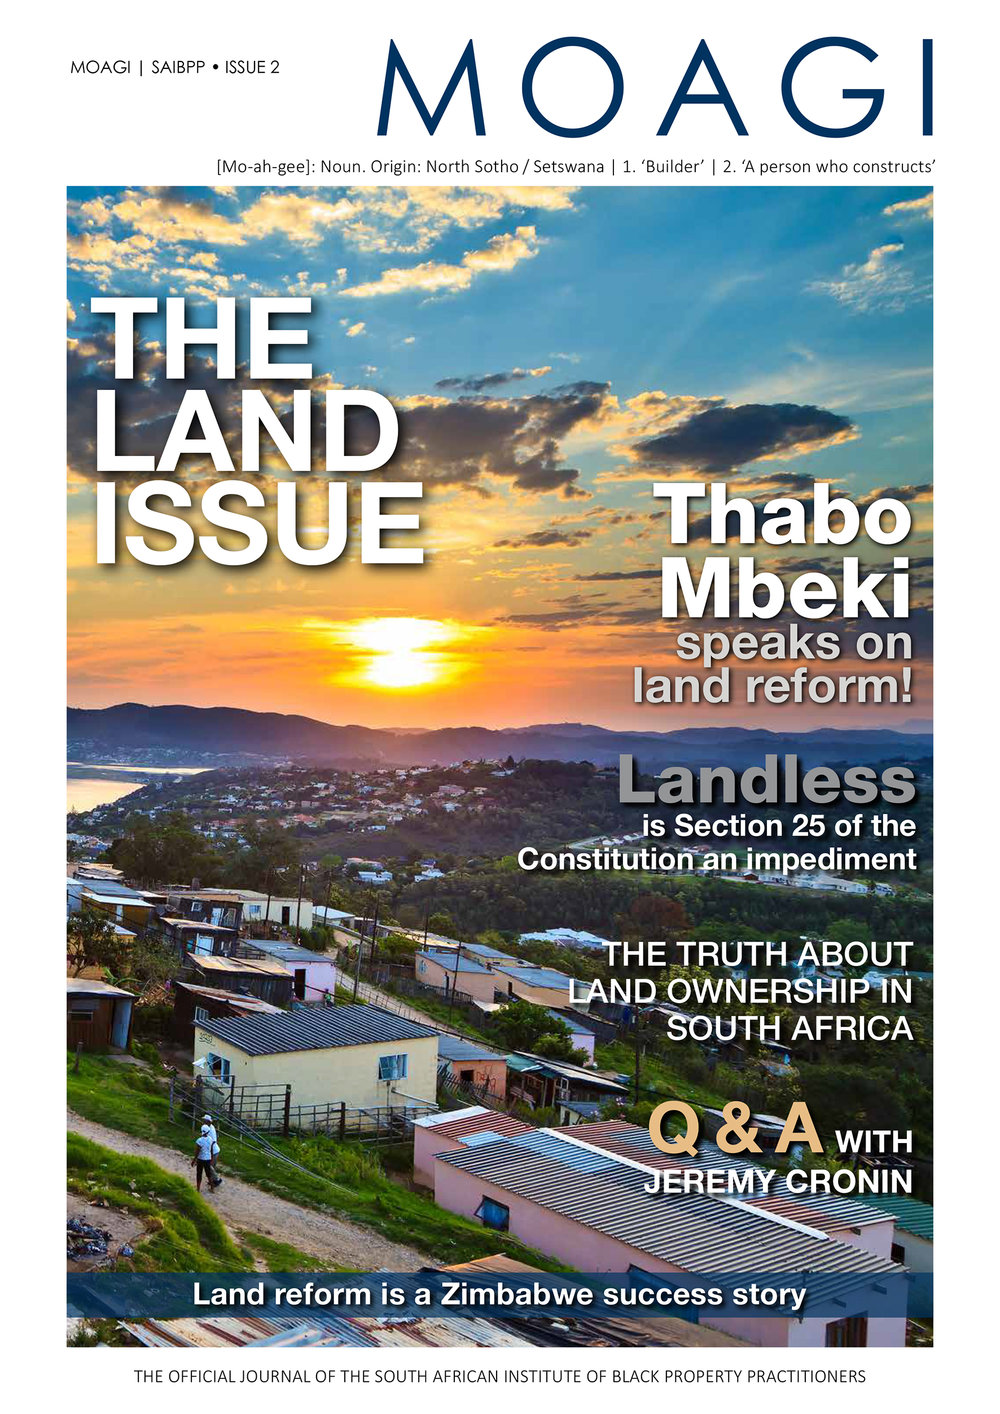 This magazine is devoted entirely to the ongoing land issue in South Africa -